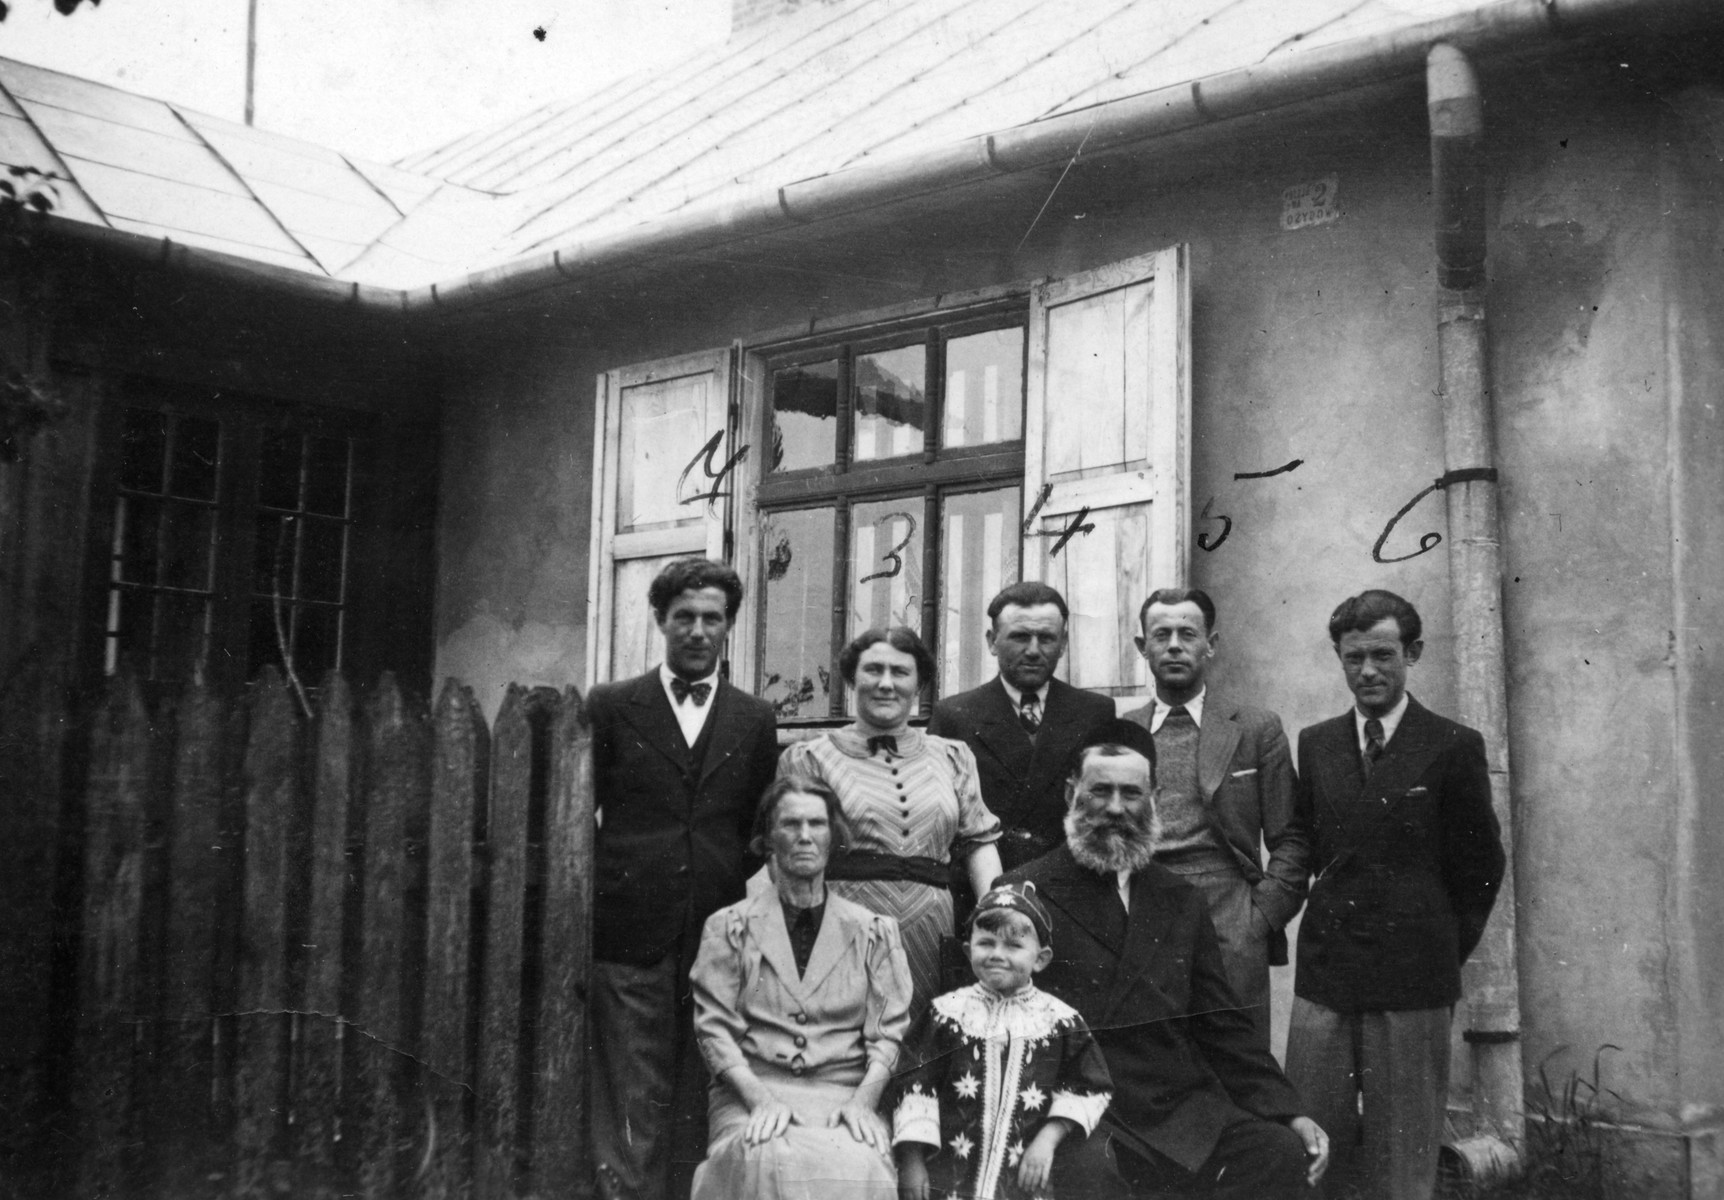 The Temple family gathers together to celebrate Purim.  From left to right are Ziomek's grandmother, Ziomek Hammer and his grandfather Moshe Lev Temple.  Standing are Gershon Temple, Lola Hammer, Heinrich Hammer, Aryeh Temple and Herman Temple.